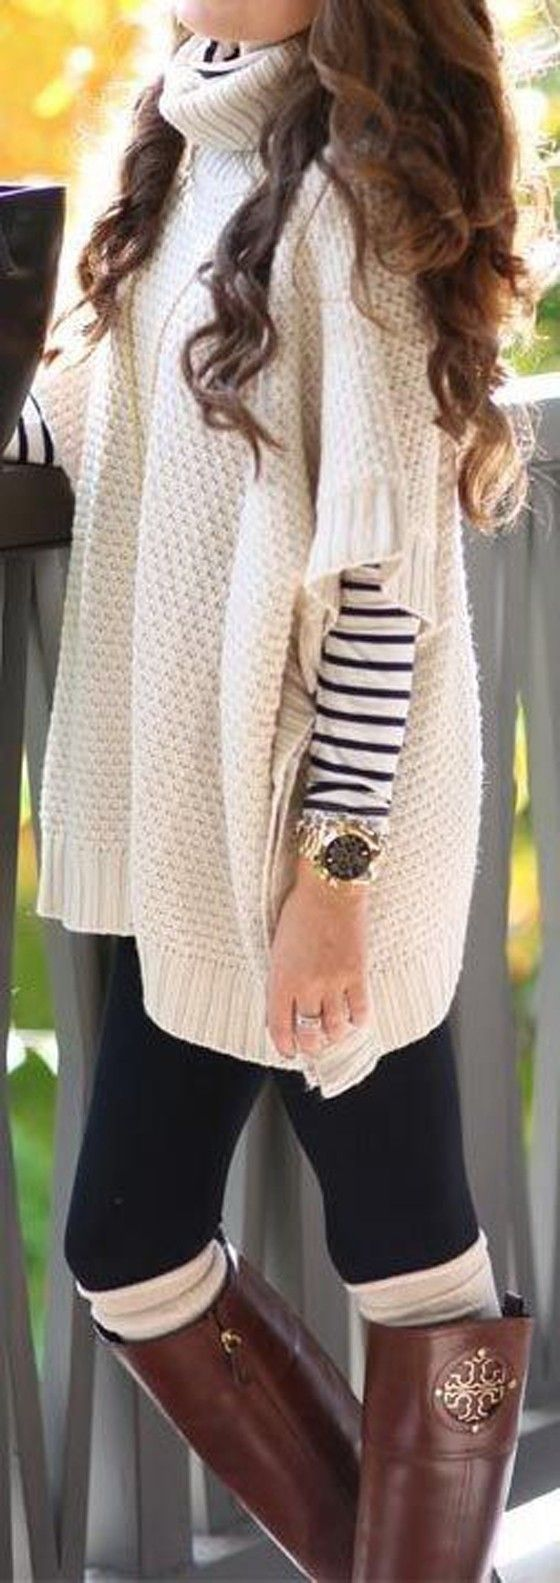 7540 best Women Fashion images on Pinterest | Accessories, Black ...